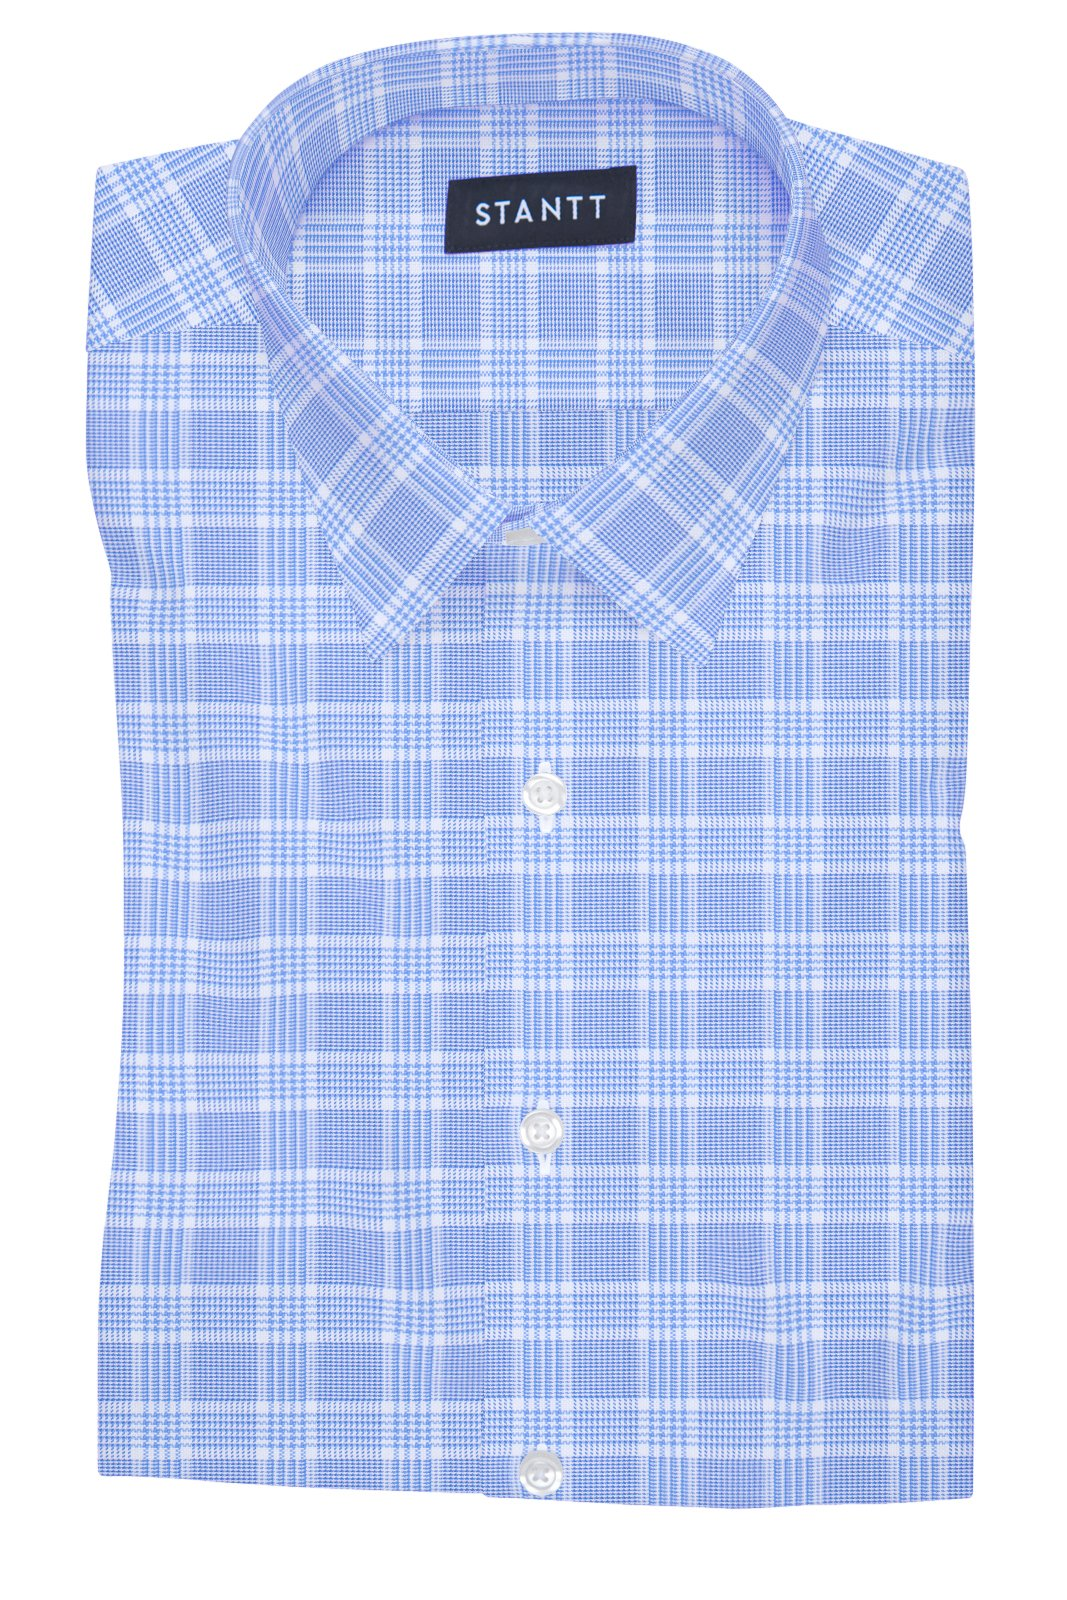 British Blue Prince of Wales Check: Semi-Spread Collar, French Cuff